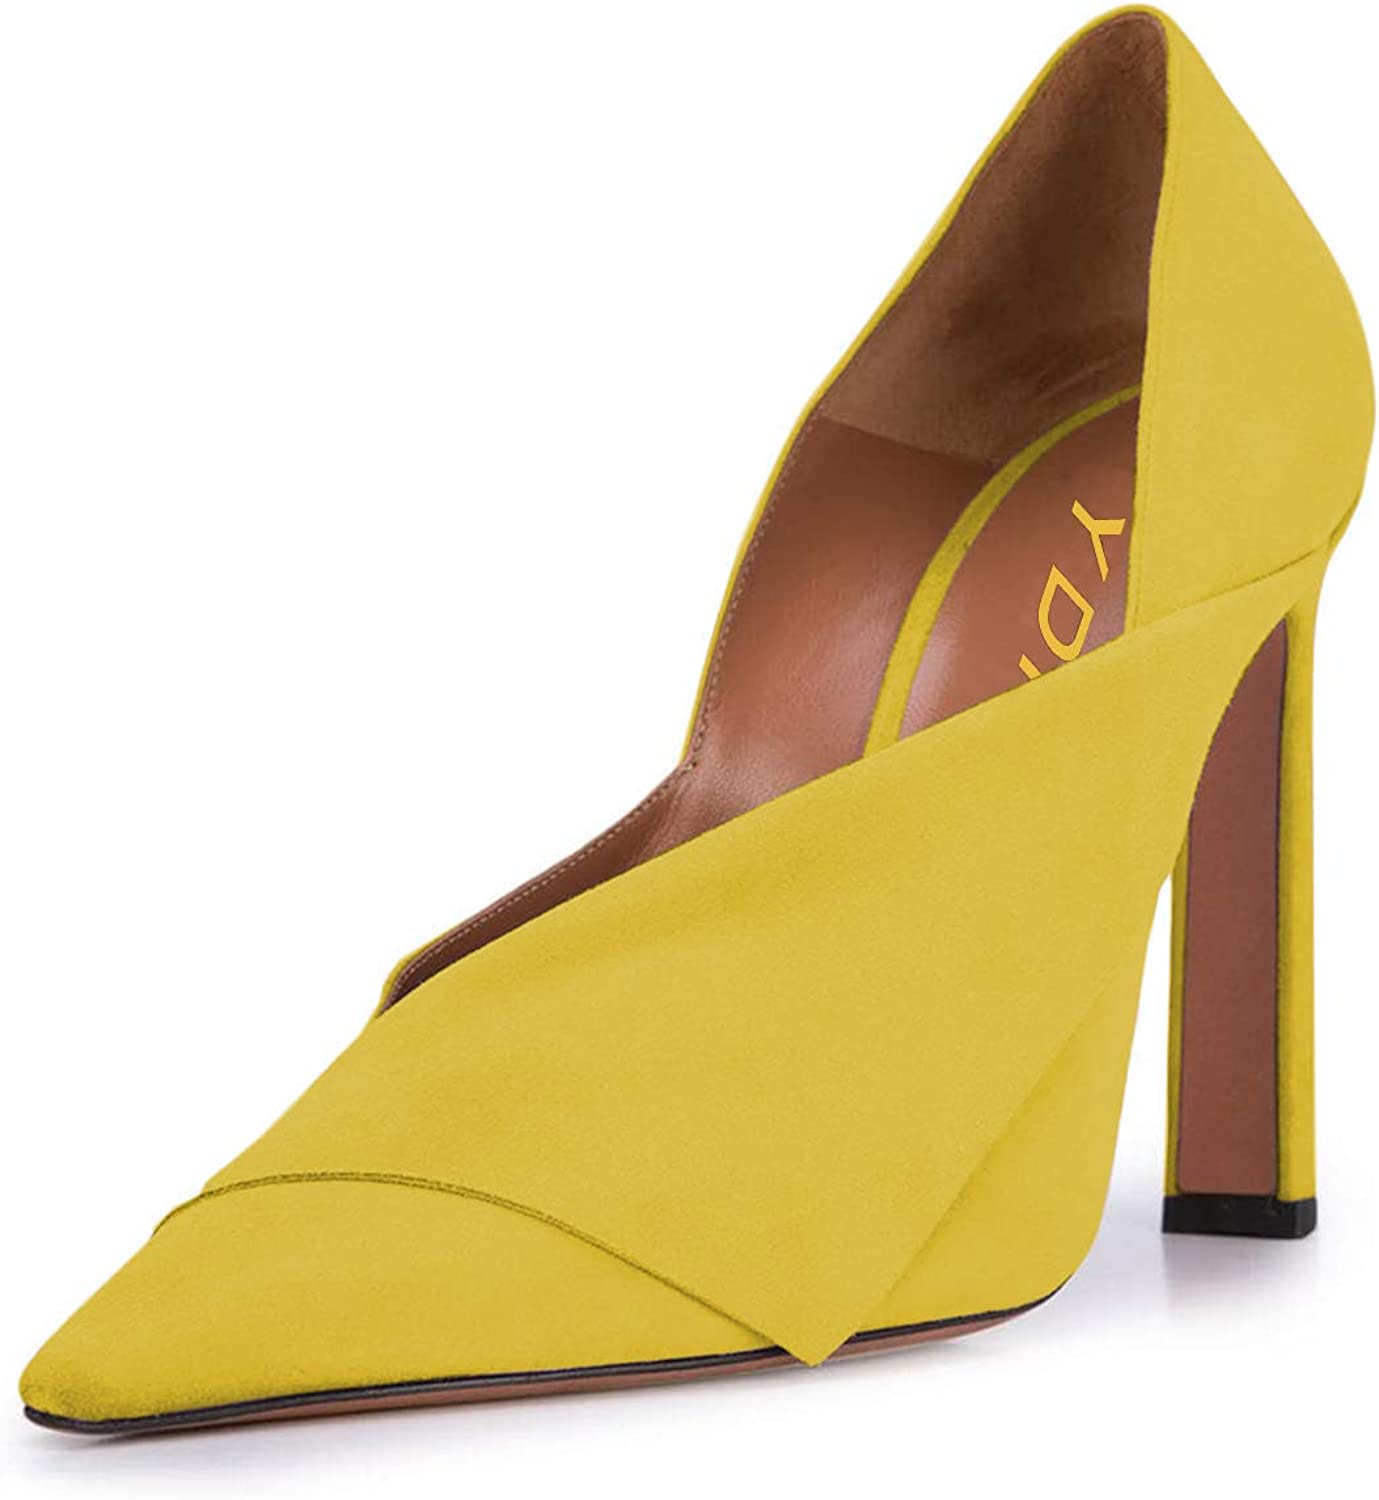 YDN Women Formal Pointed Toe Suede Pumps High Heels Slip On V Cut Office Party shoes